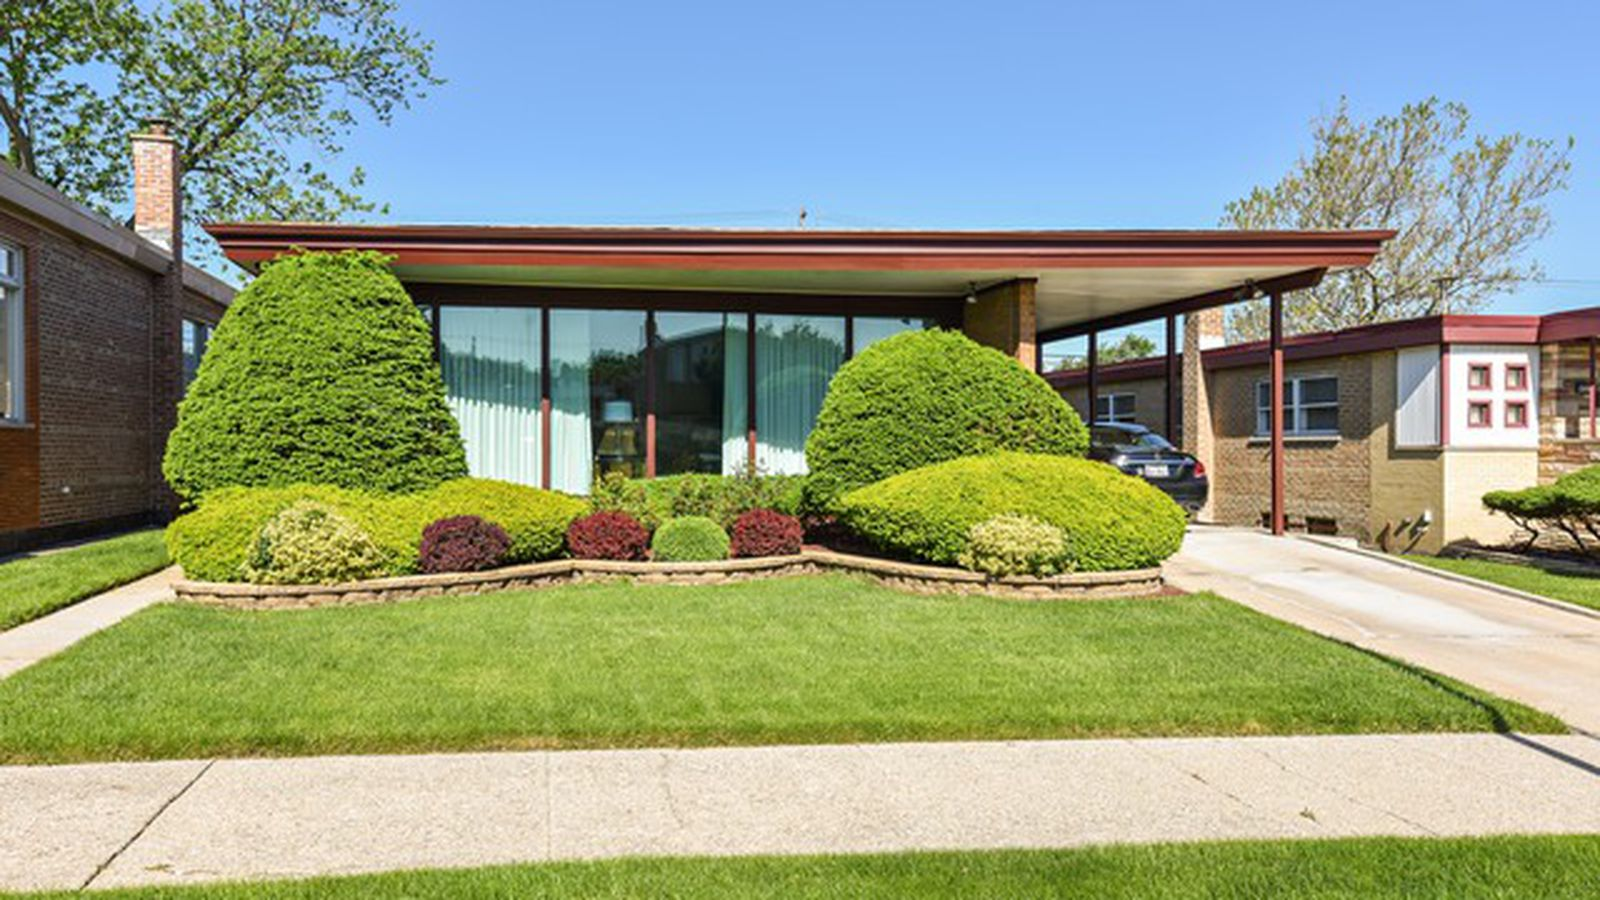 Two chicago area midcentury time capsules for under 250k for Cost to build mid century modern home